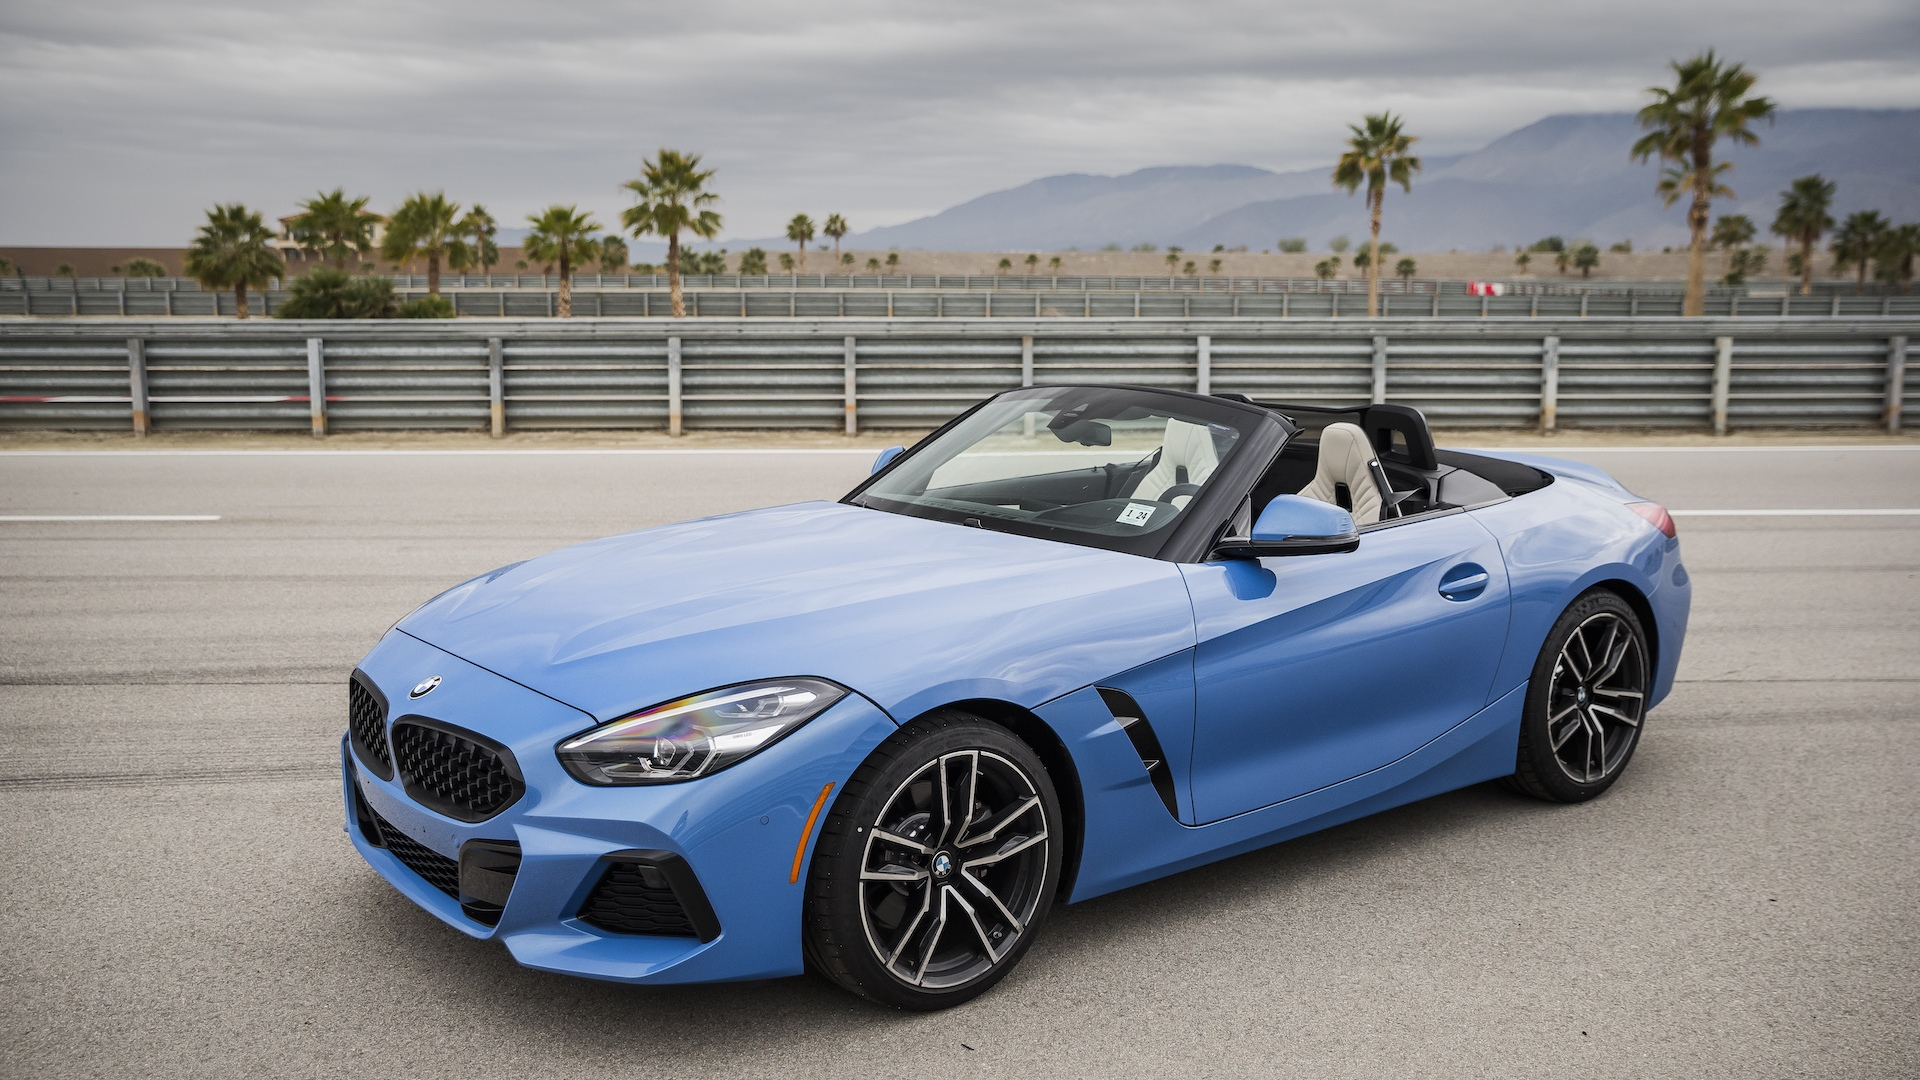 2021 Bmw Z4 Convertible Release Date, Color Options, Changes